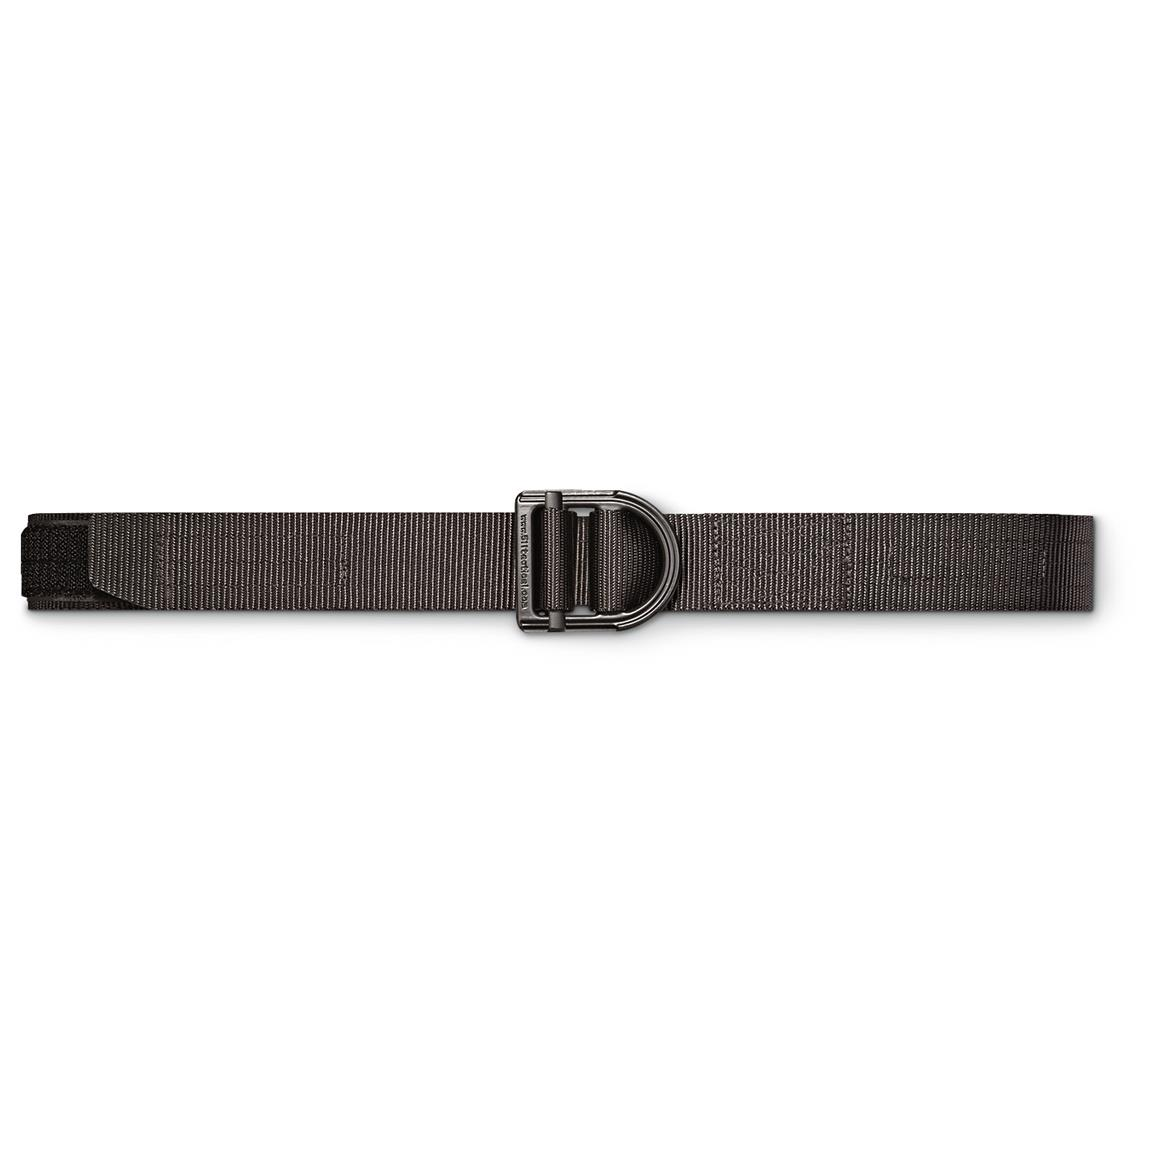 "5.11 Tactical 1 1/2"" Wide Trainer Belt, Black"